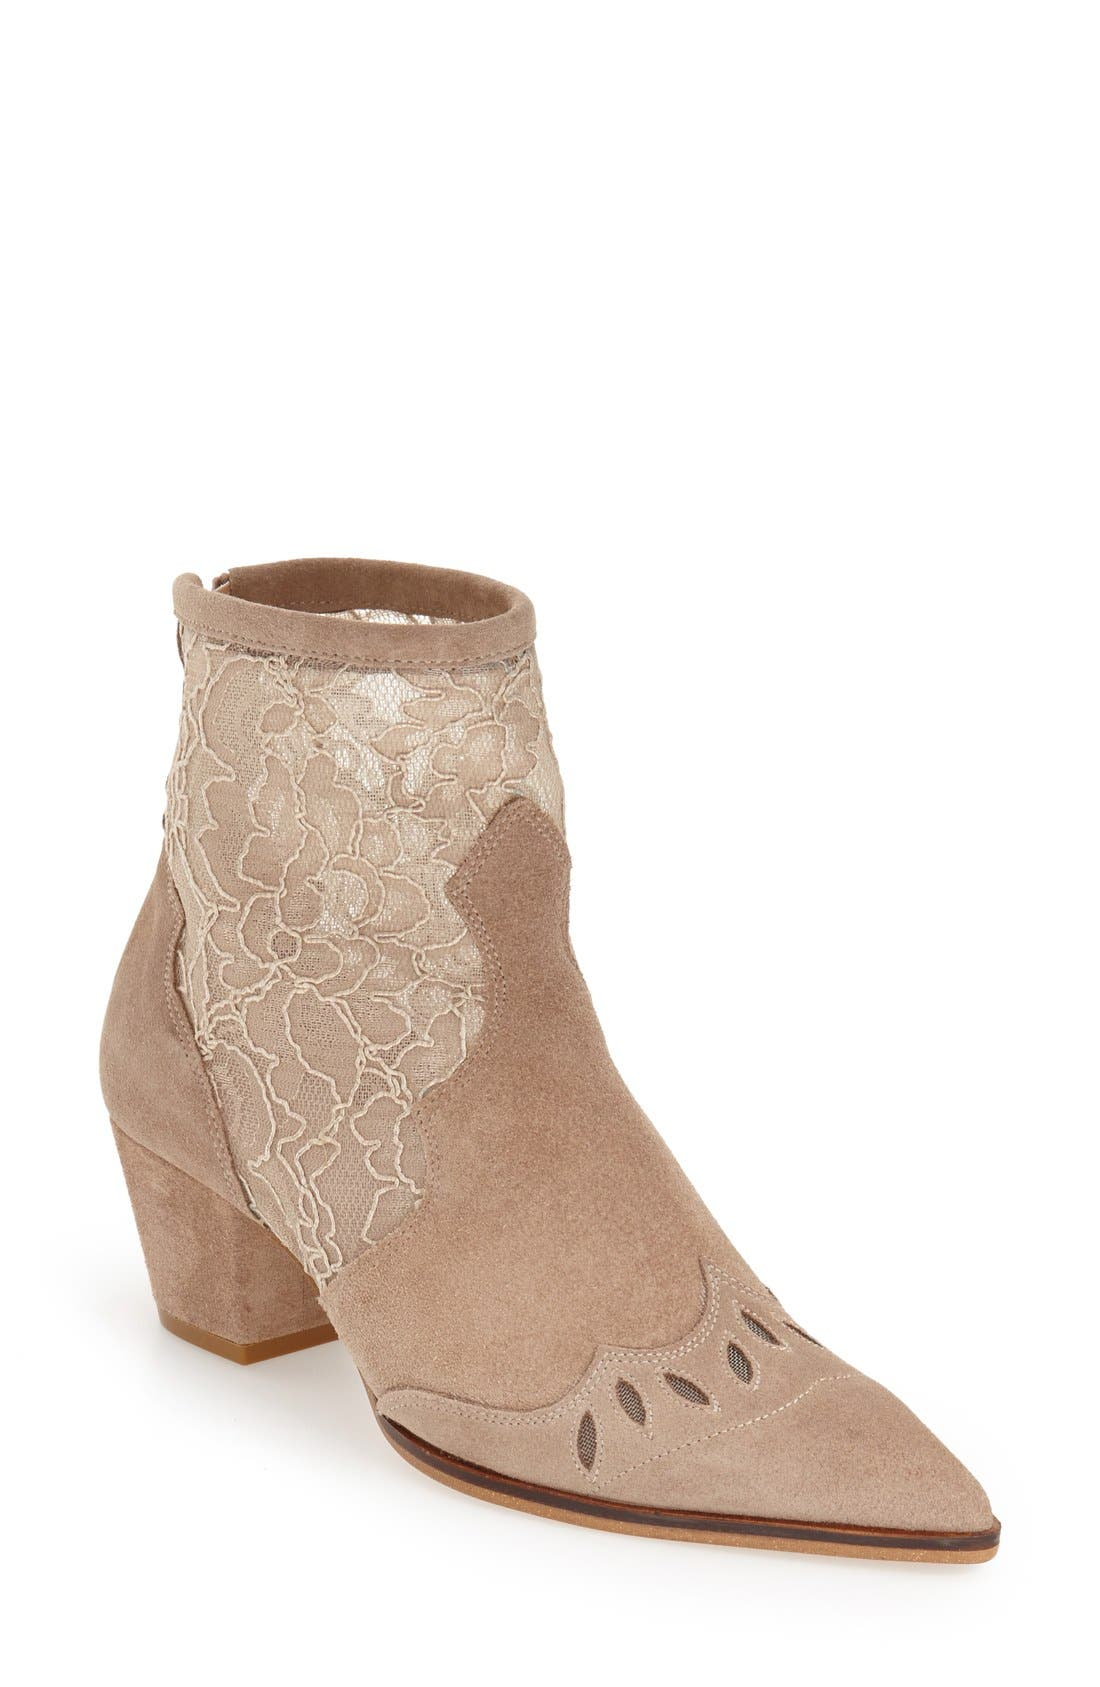 Alternate Image 1 Selected - Topshop 'Alegra' Lace Pointy Toe Boot (Women)